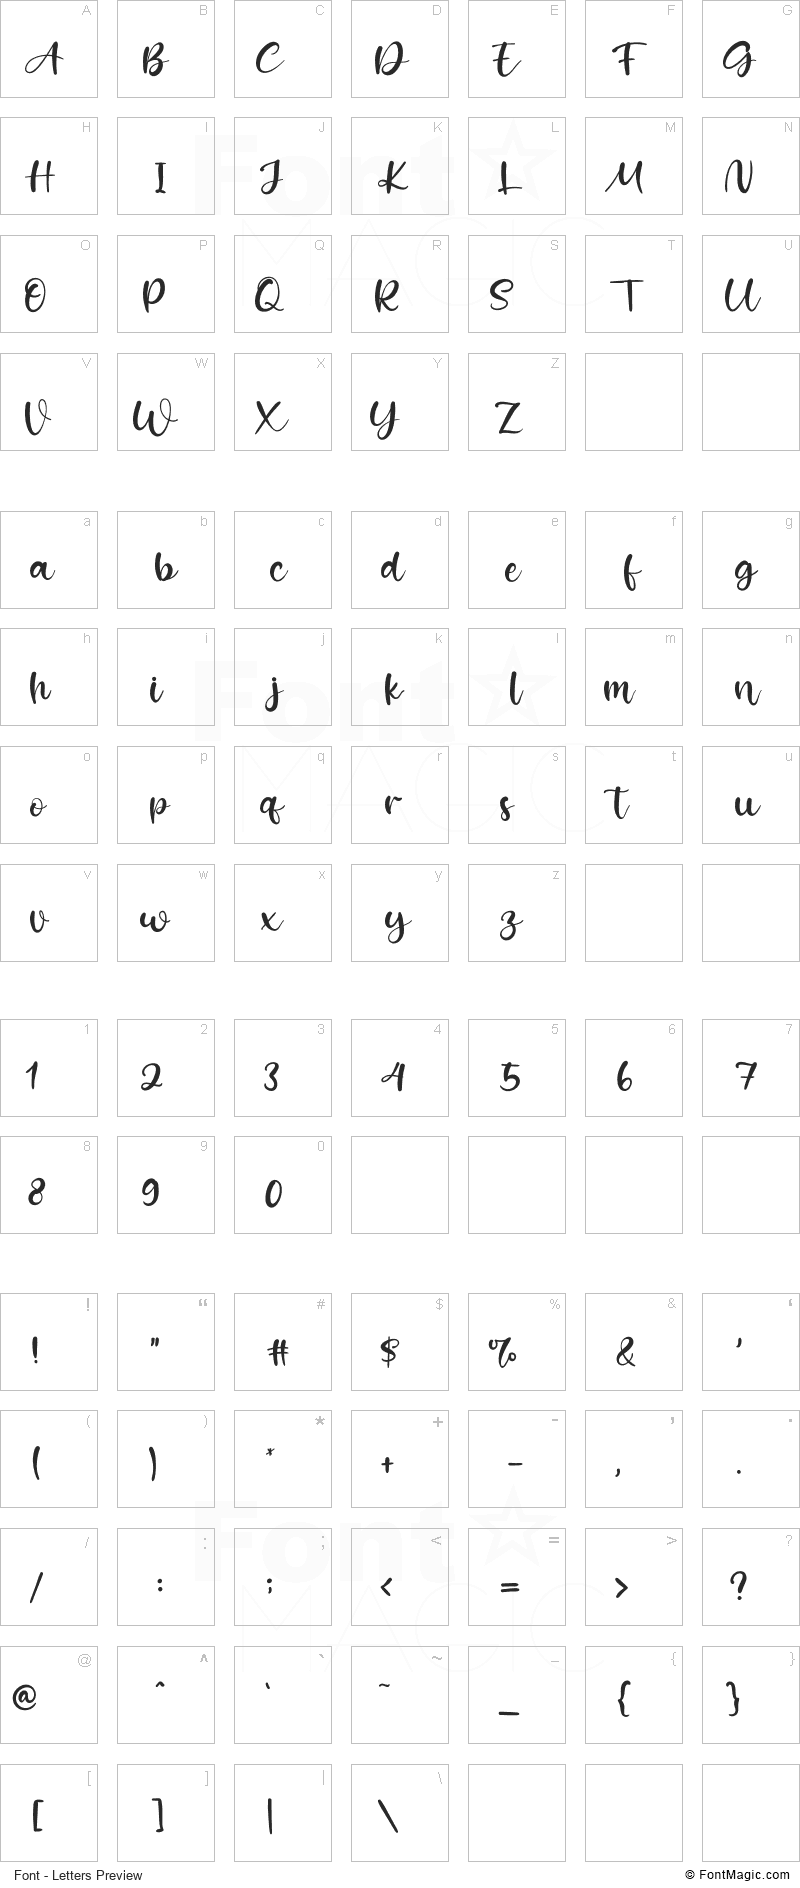 Kiss Boom Font - All Latters Preview Chart